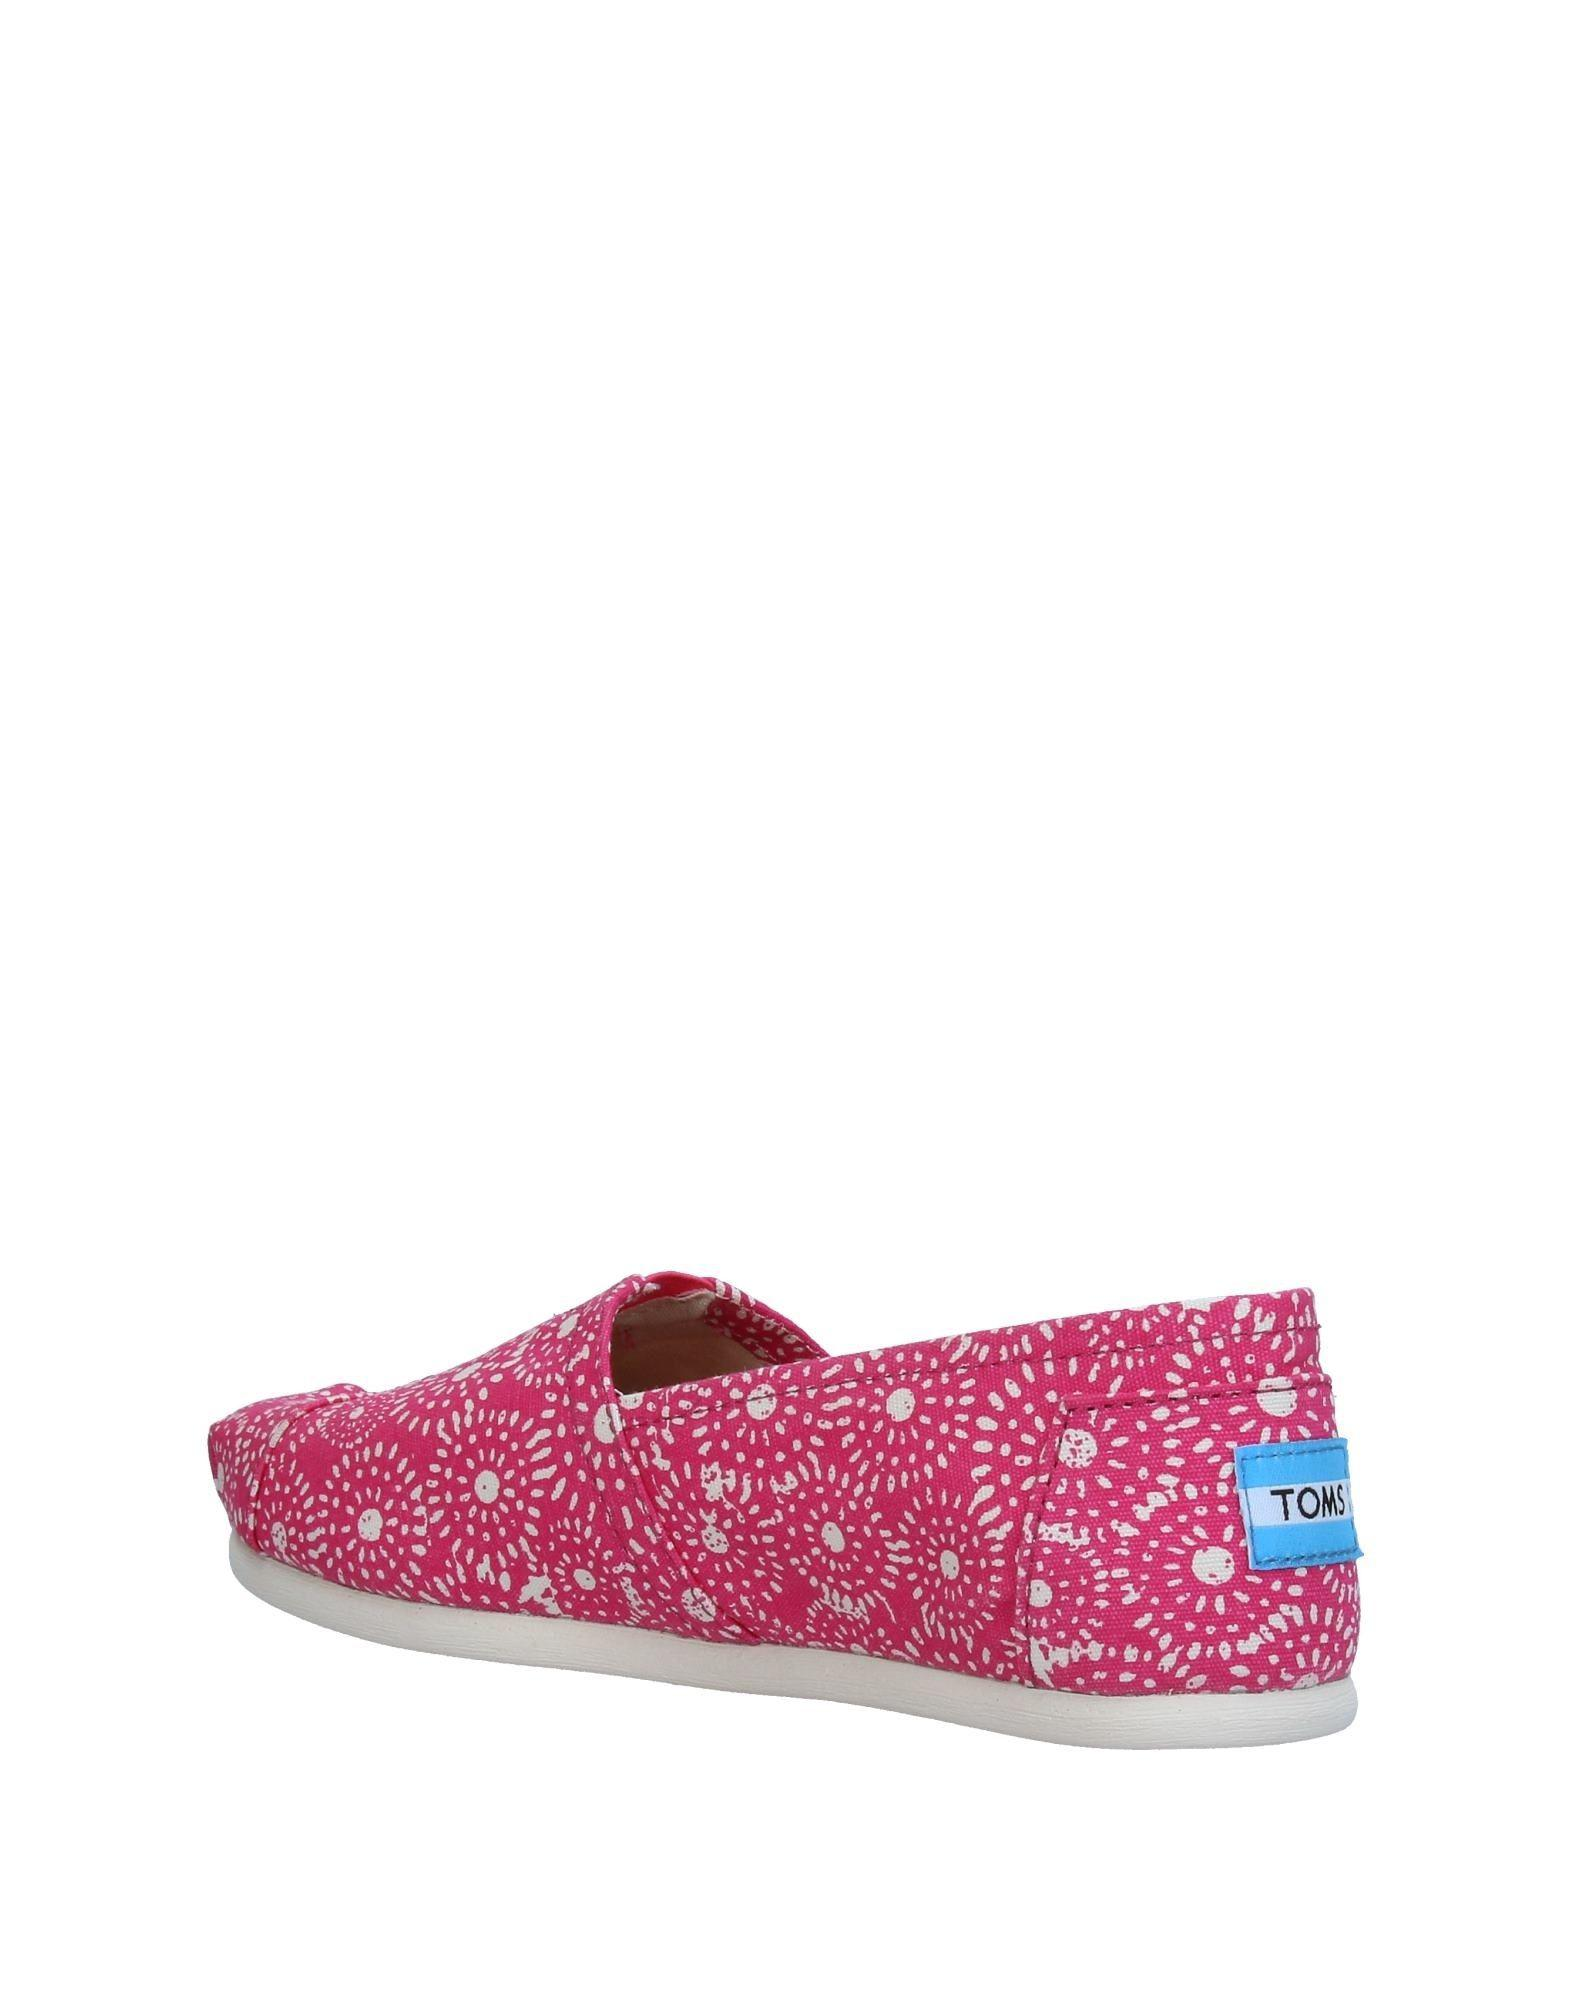 TOMS Canvas Low-tops & Sneakers